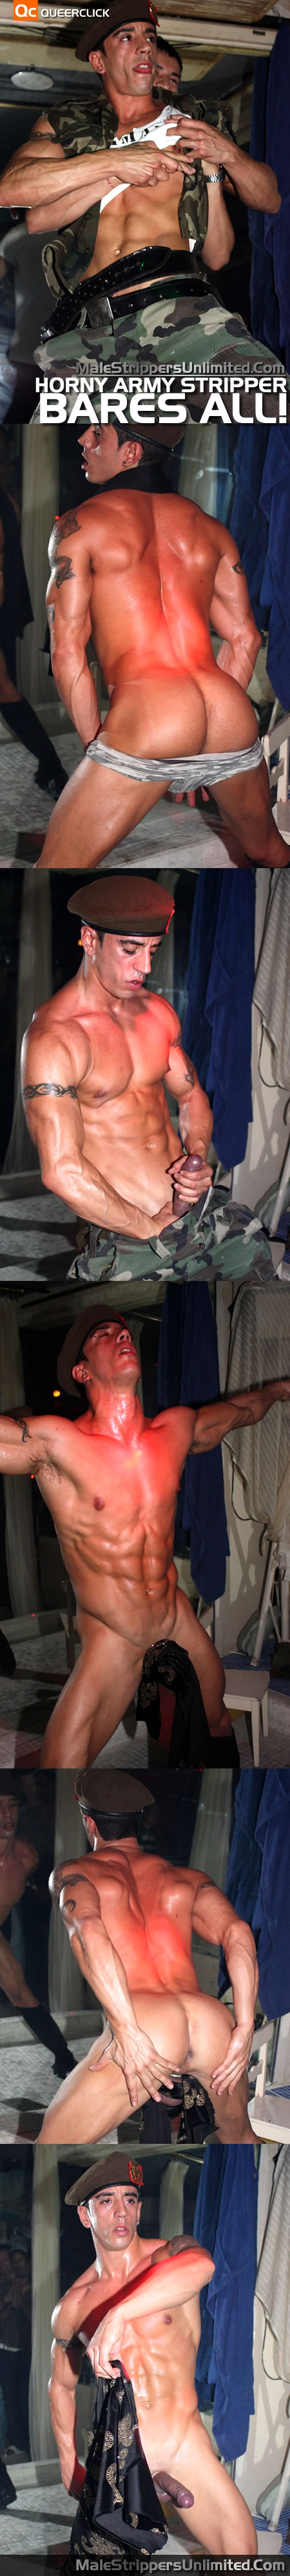 Male Strippers Unlimited: Horny Army Stripper Bares